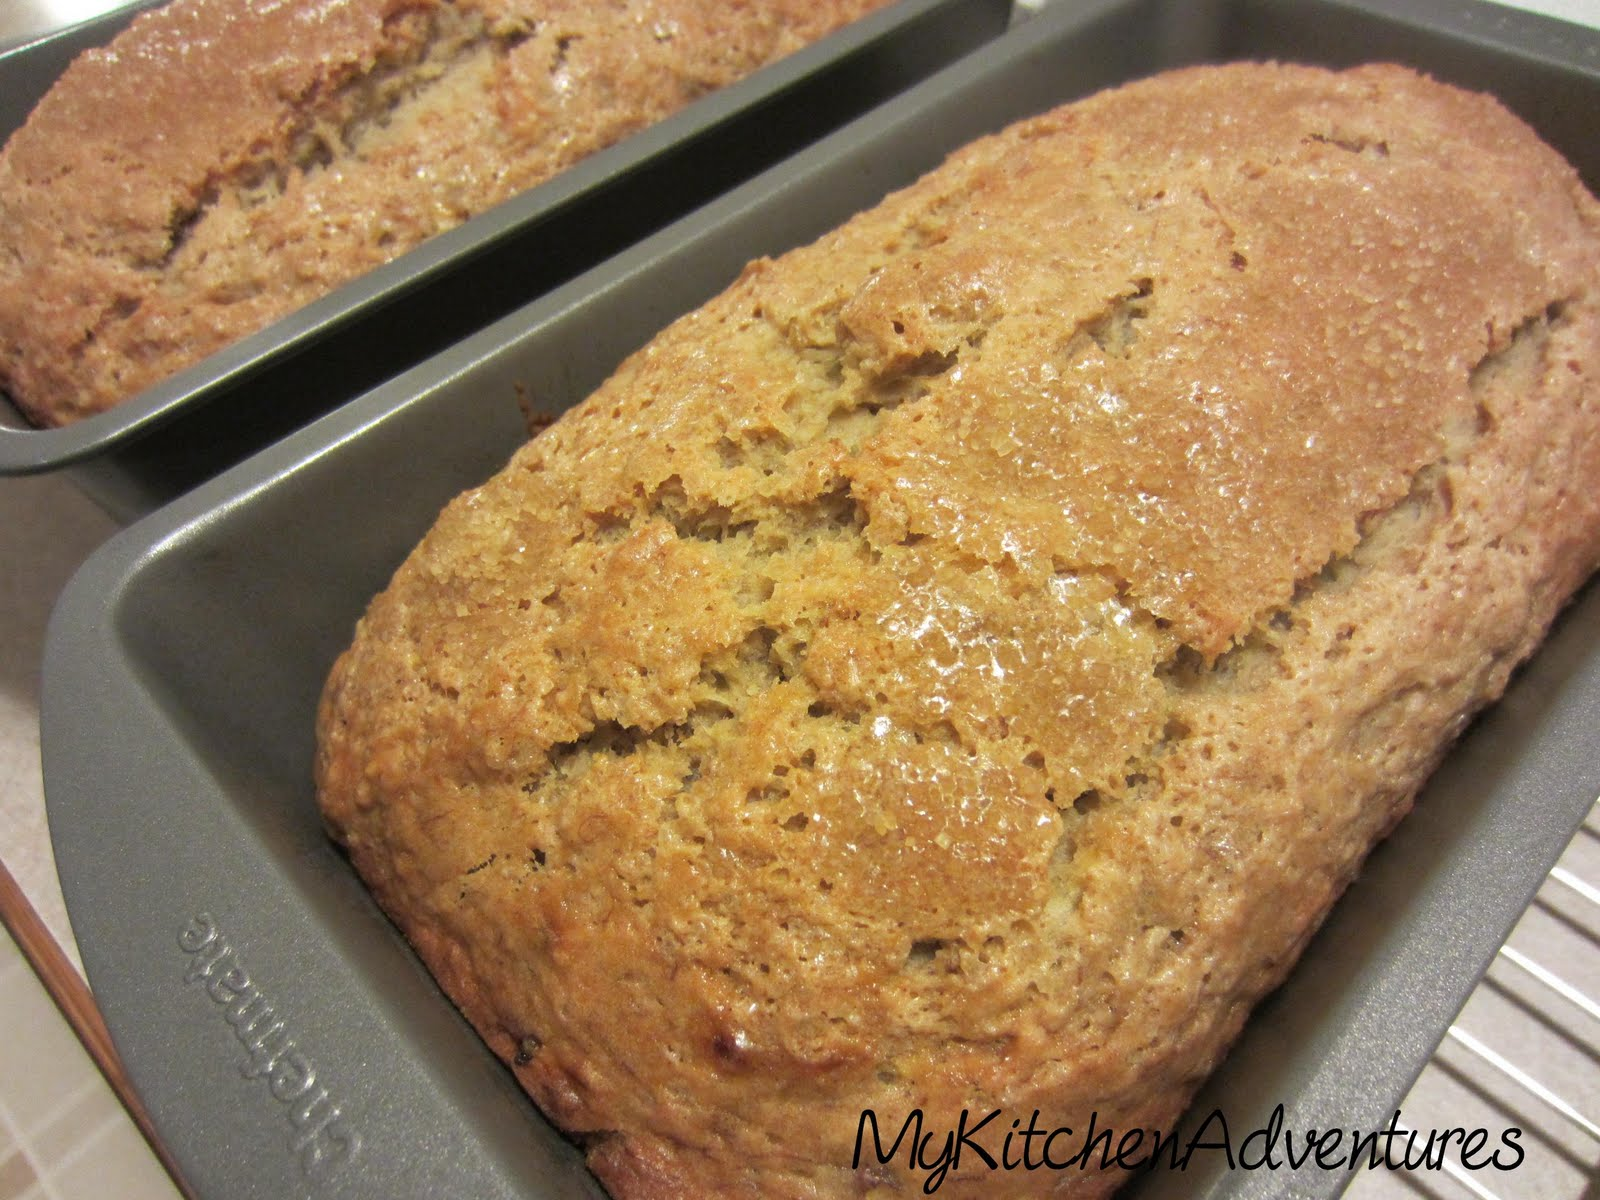 Renee's Kitchen Adventures: Banana-Applesauce Bread